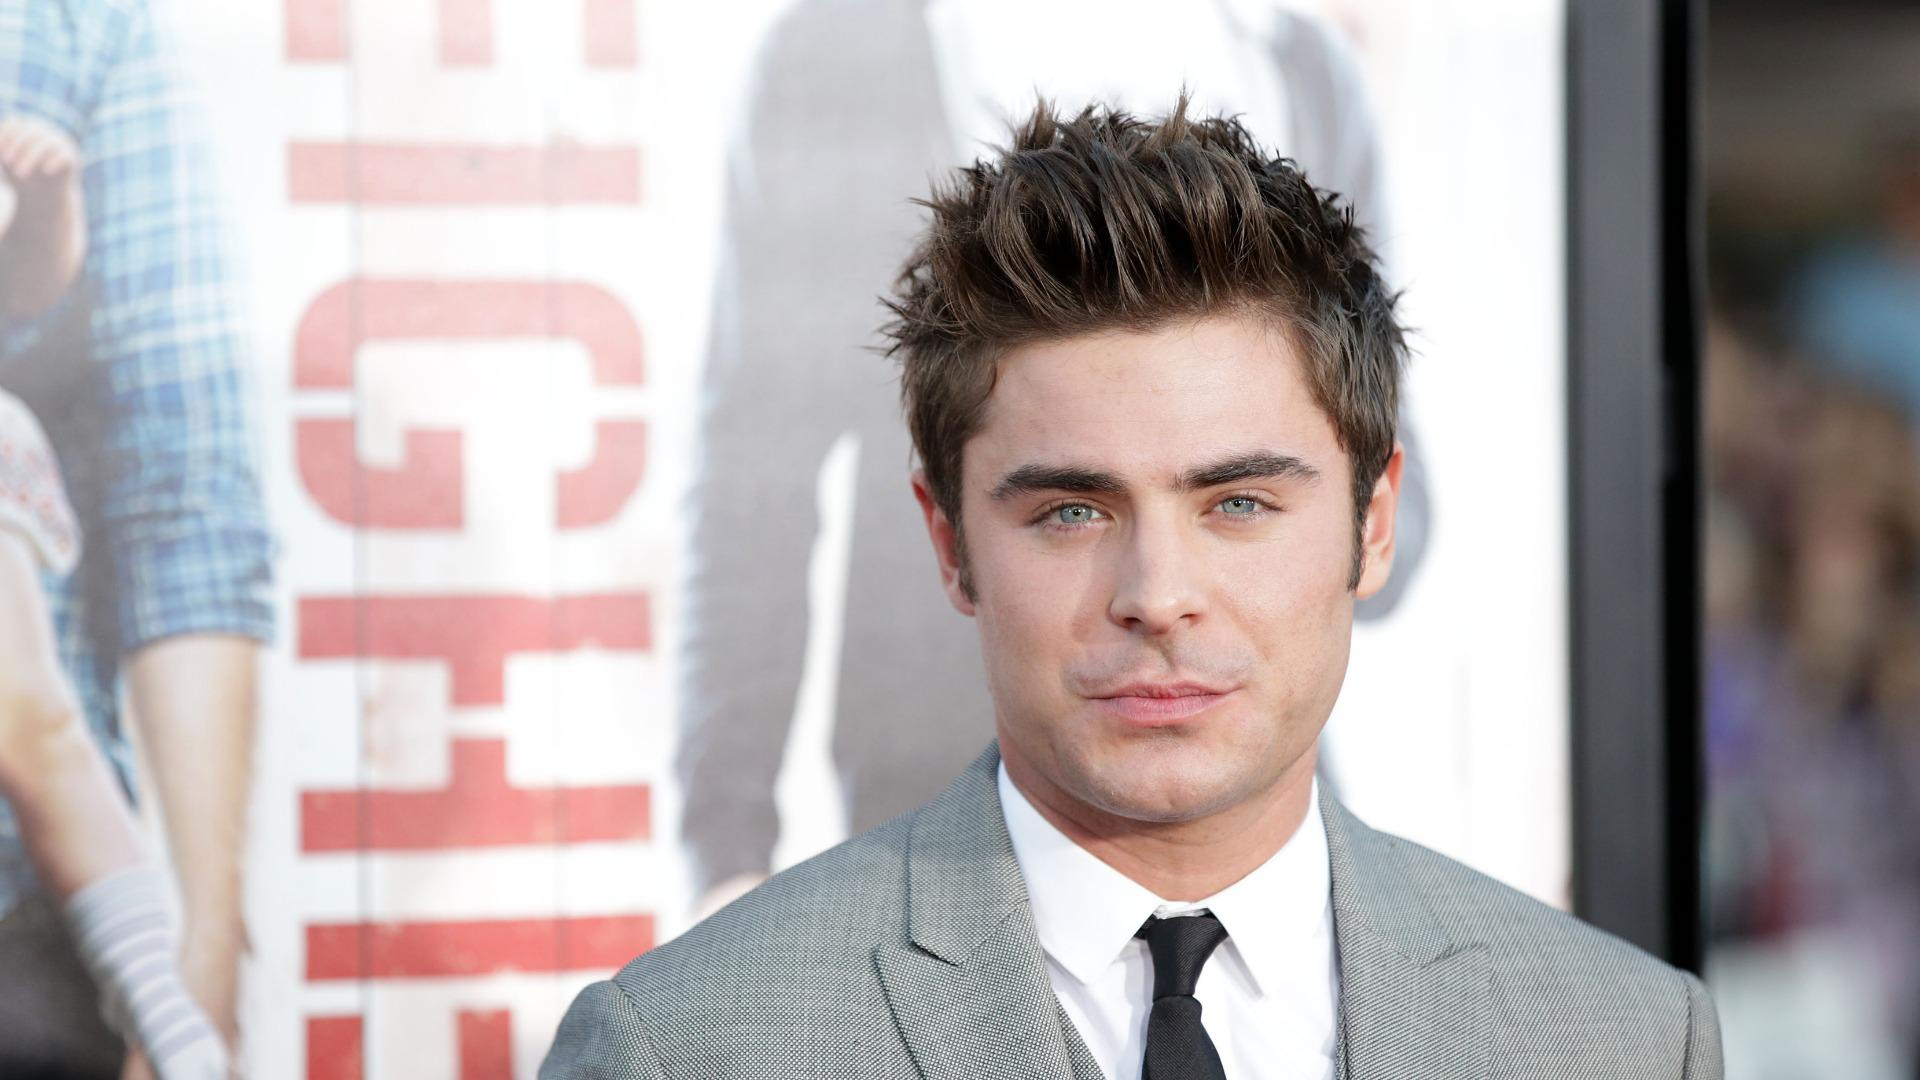 Zac Efron opens up to Bear Grylls about rehab, addiction